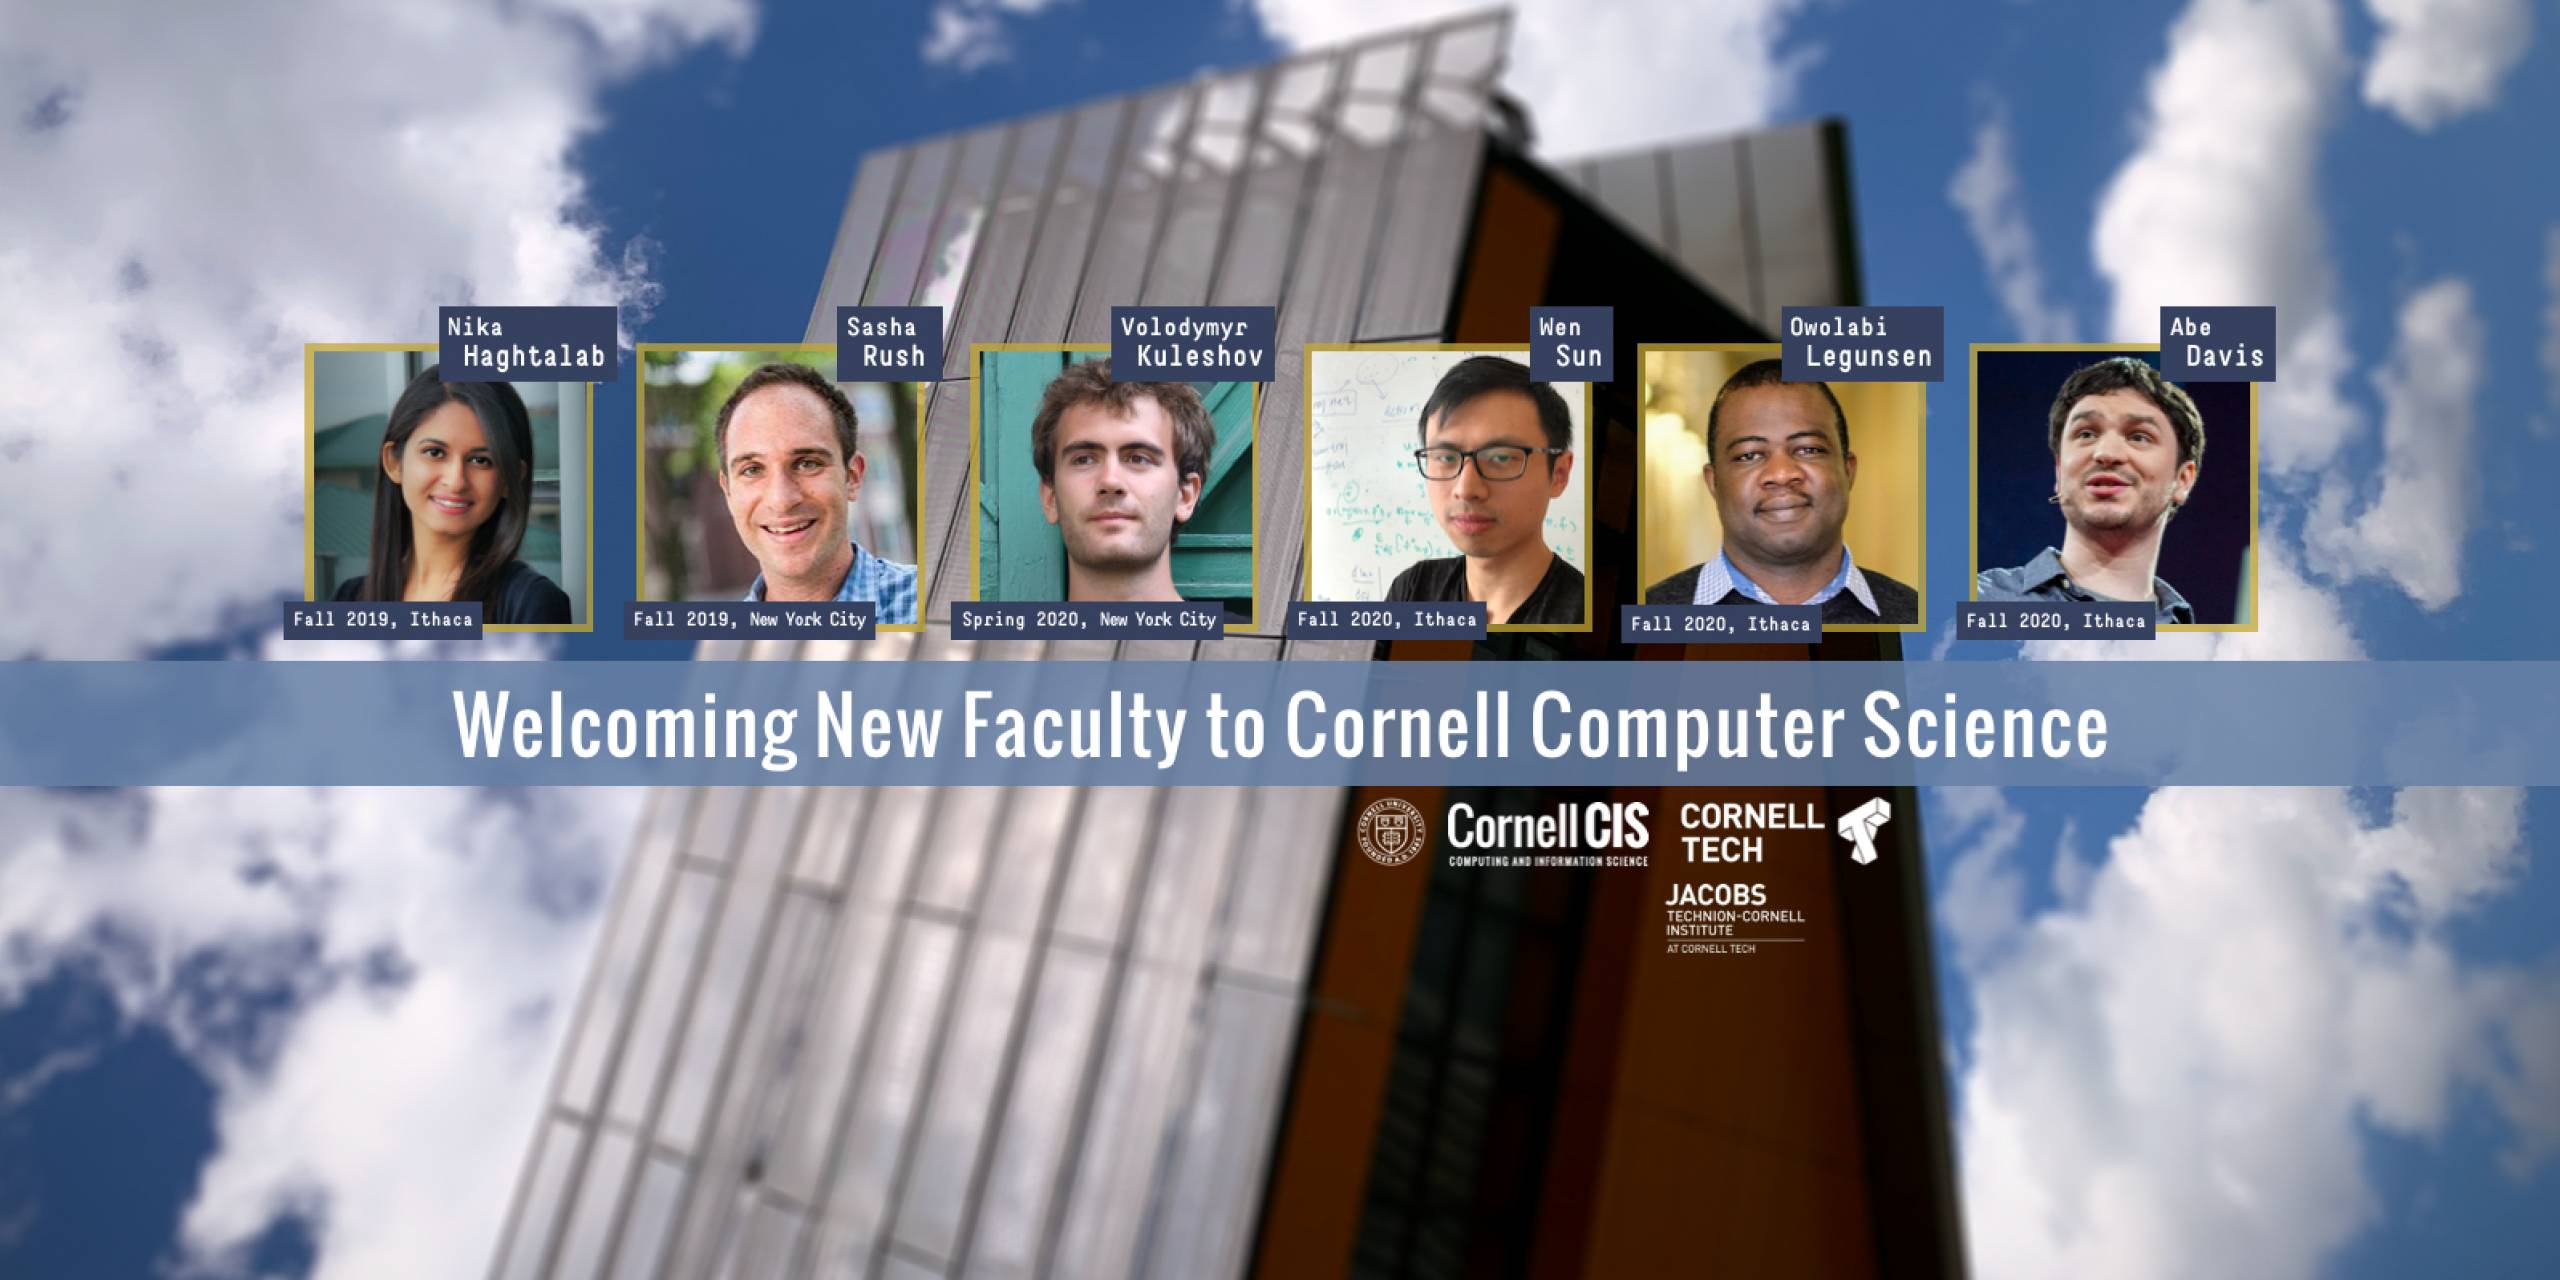 Welcoming New Faculty to Cornell Computer Science